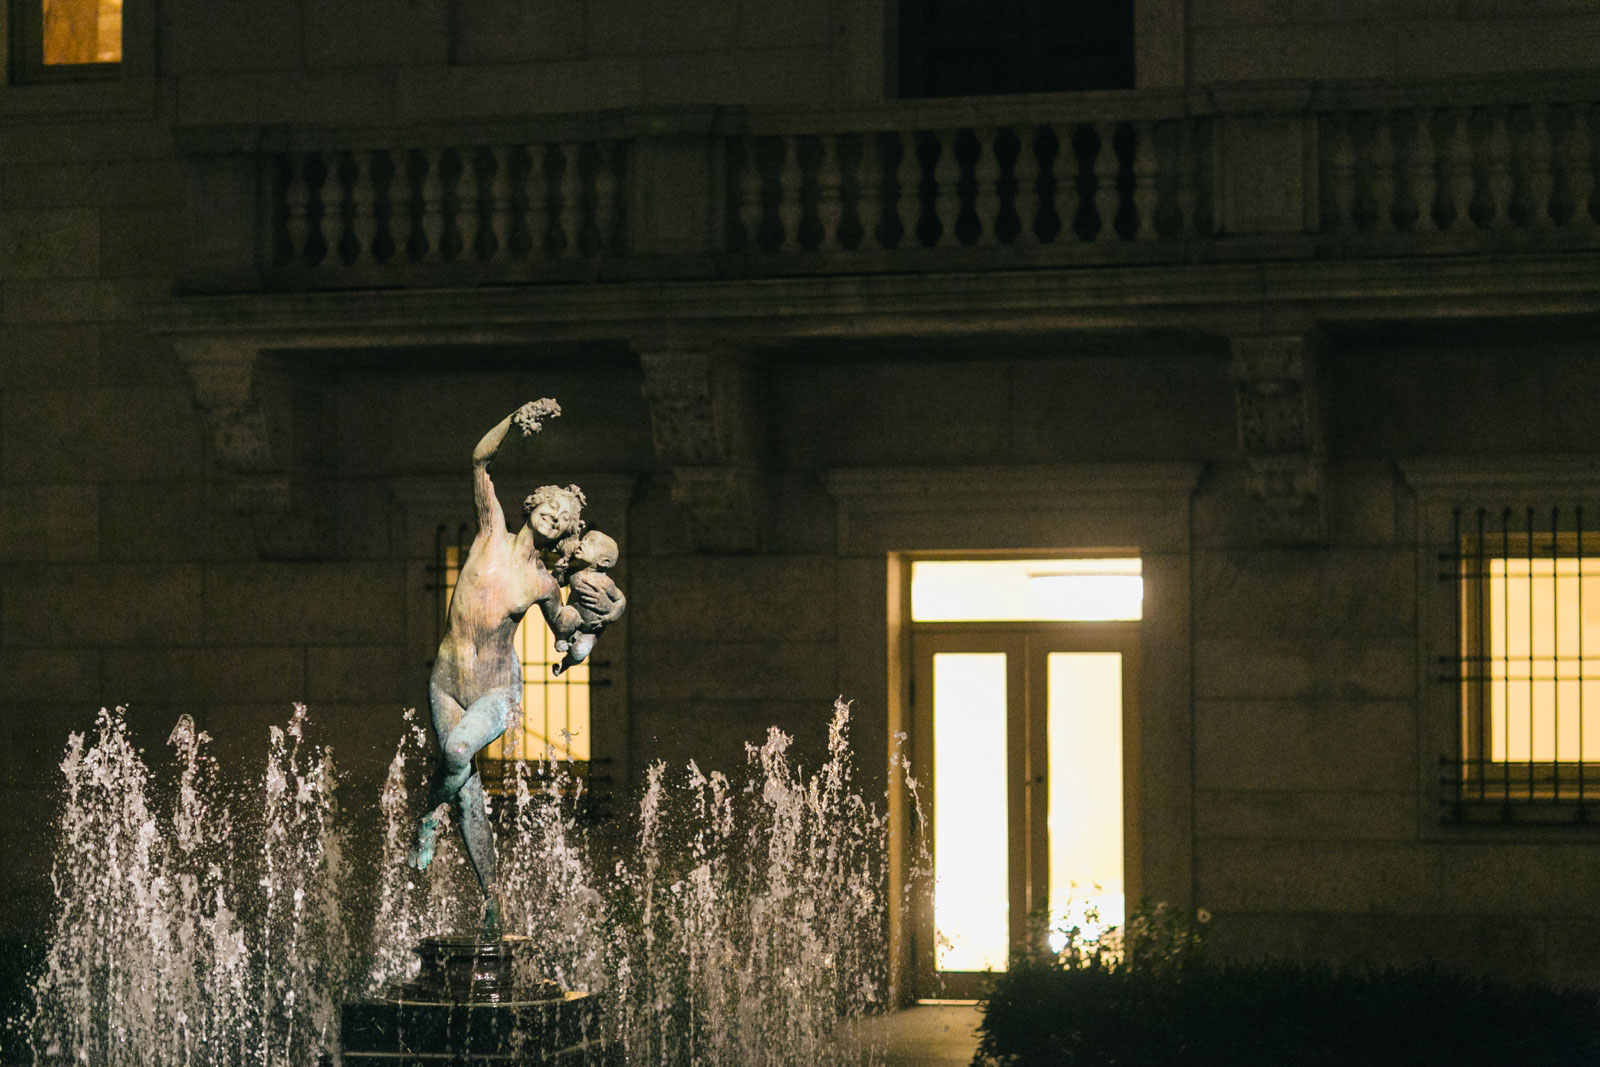 Famous statue in fountain of courtyard at Boston public library lit up at night for wedding ceremony